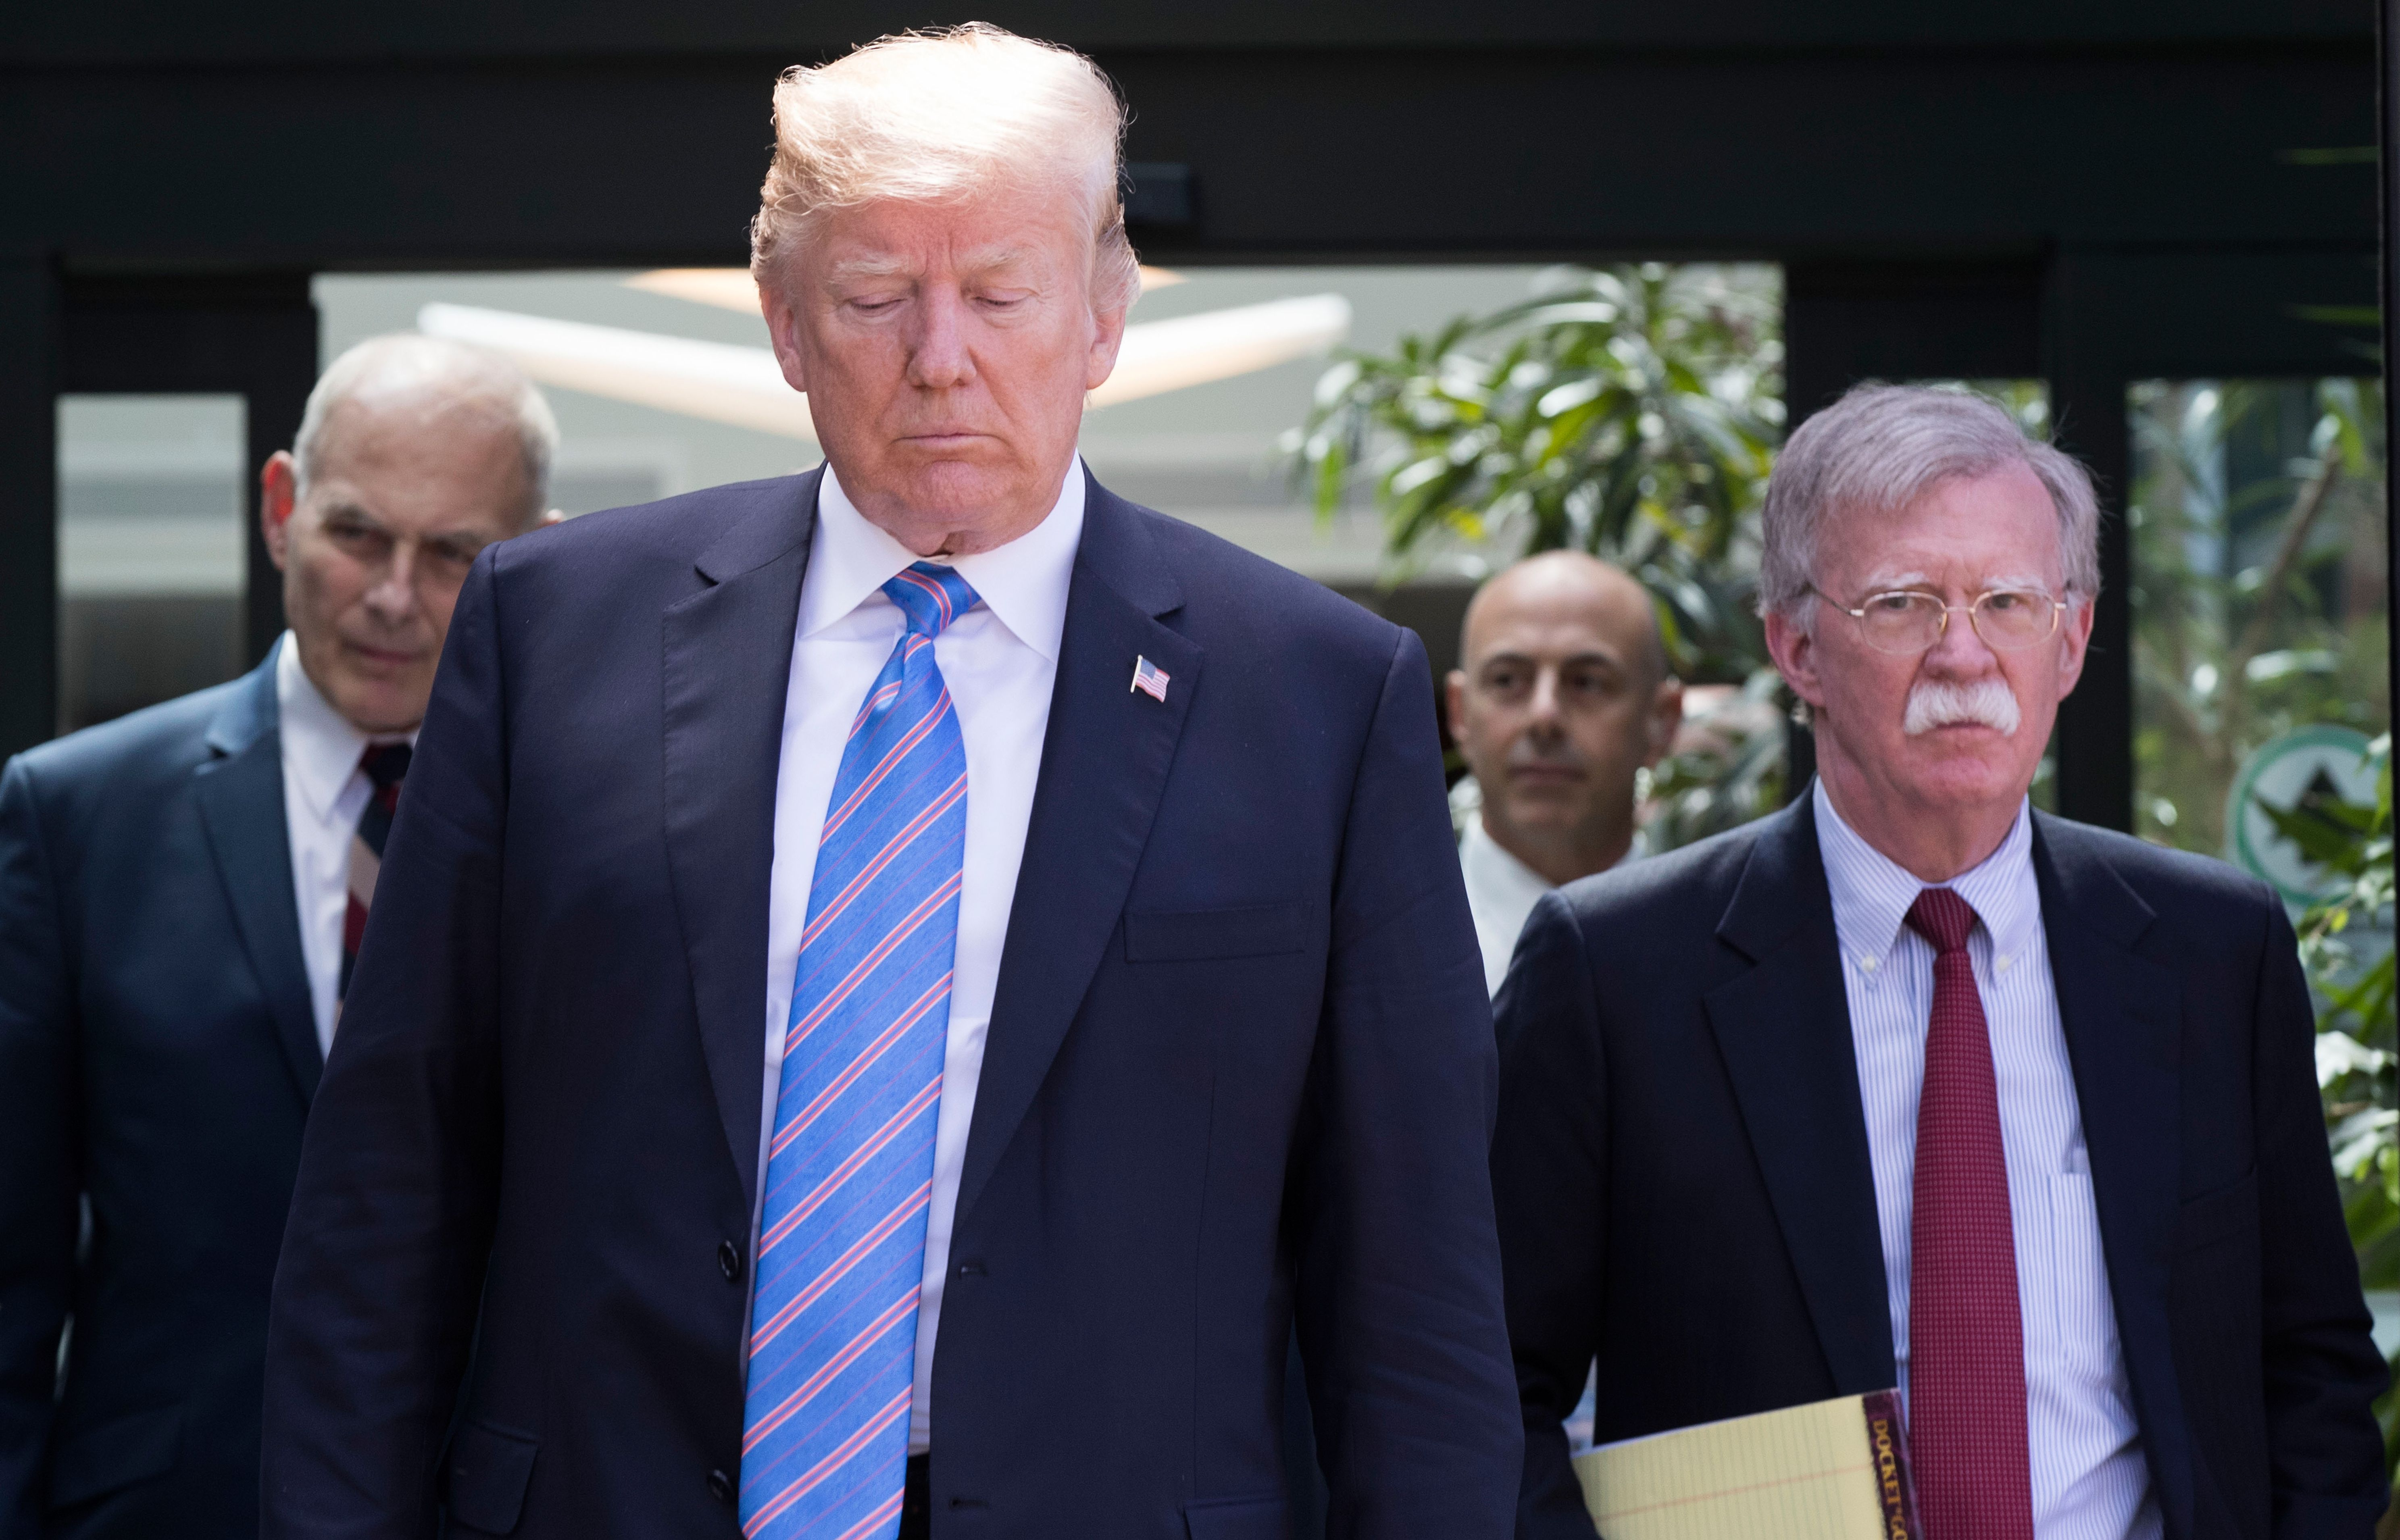 President Donald Trump, with National Security Advisor John Bolton have escalated tensions with Iran.